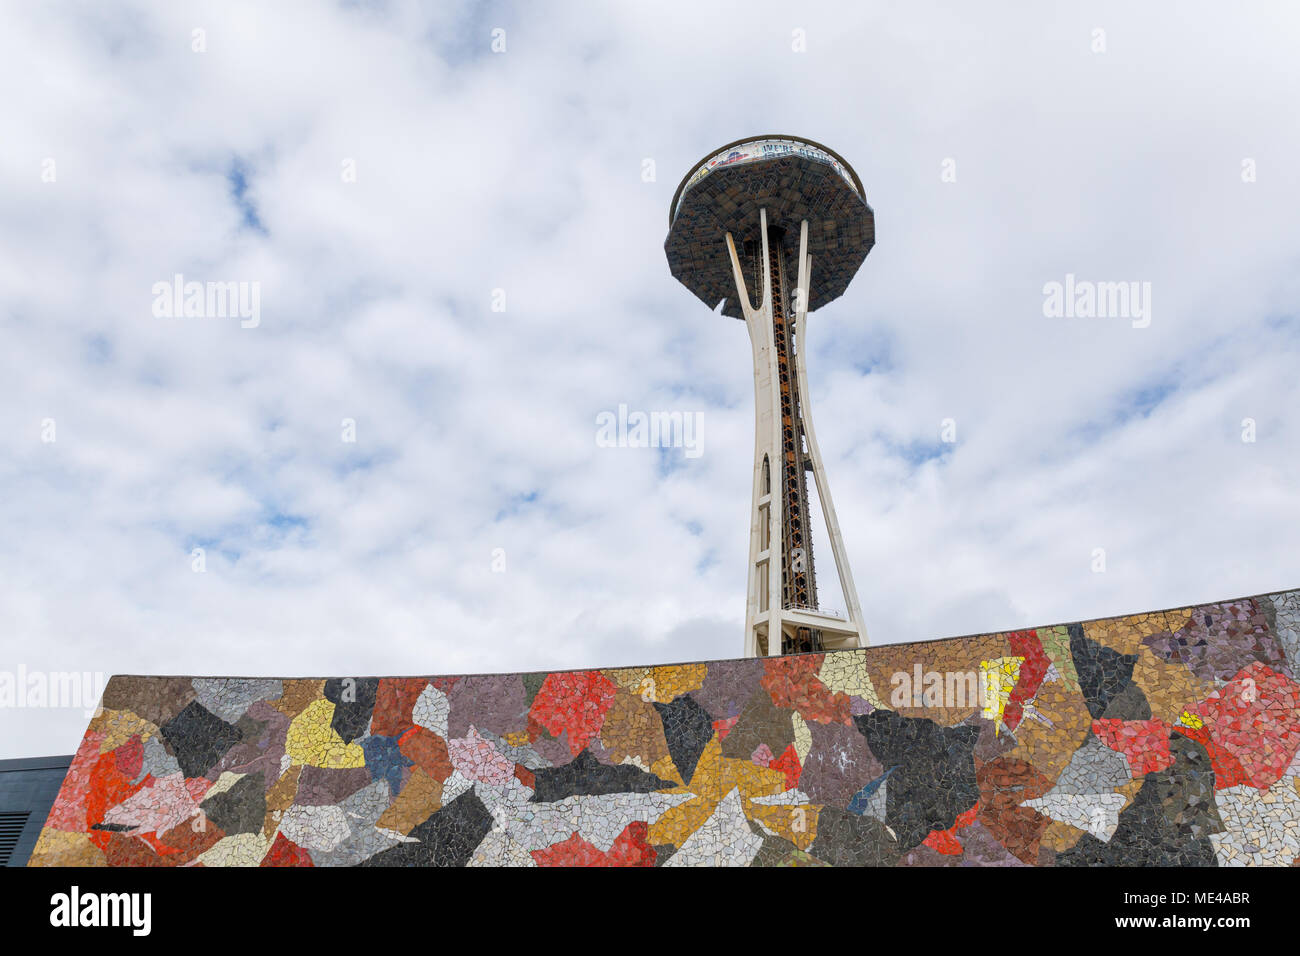 Seattle, Washington - April 9, 2018 : Seattle Space Needle Under Remodeling Construction, which is an observation tower built for the 1962 World Fair Stock Photo